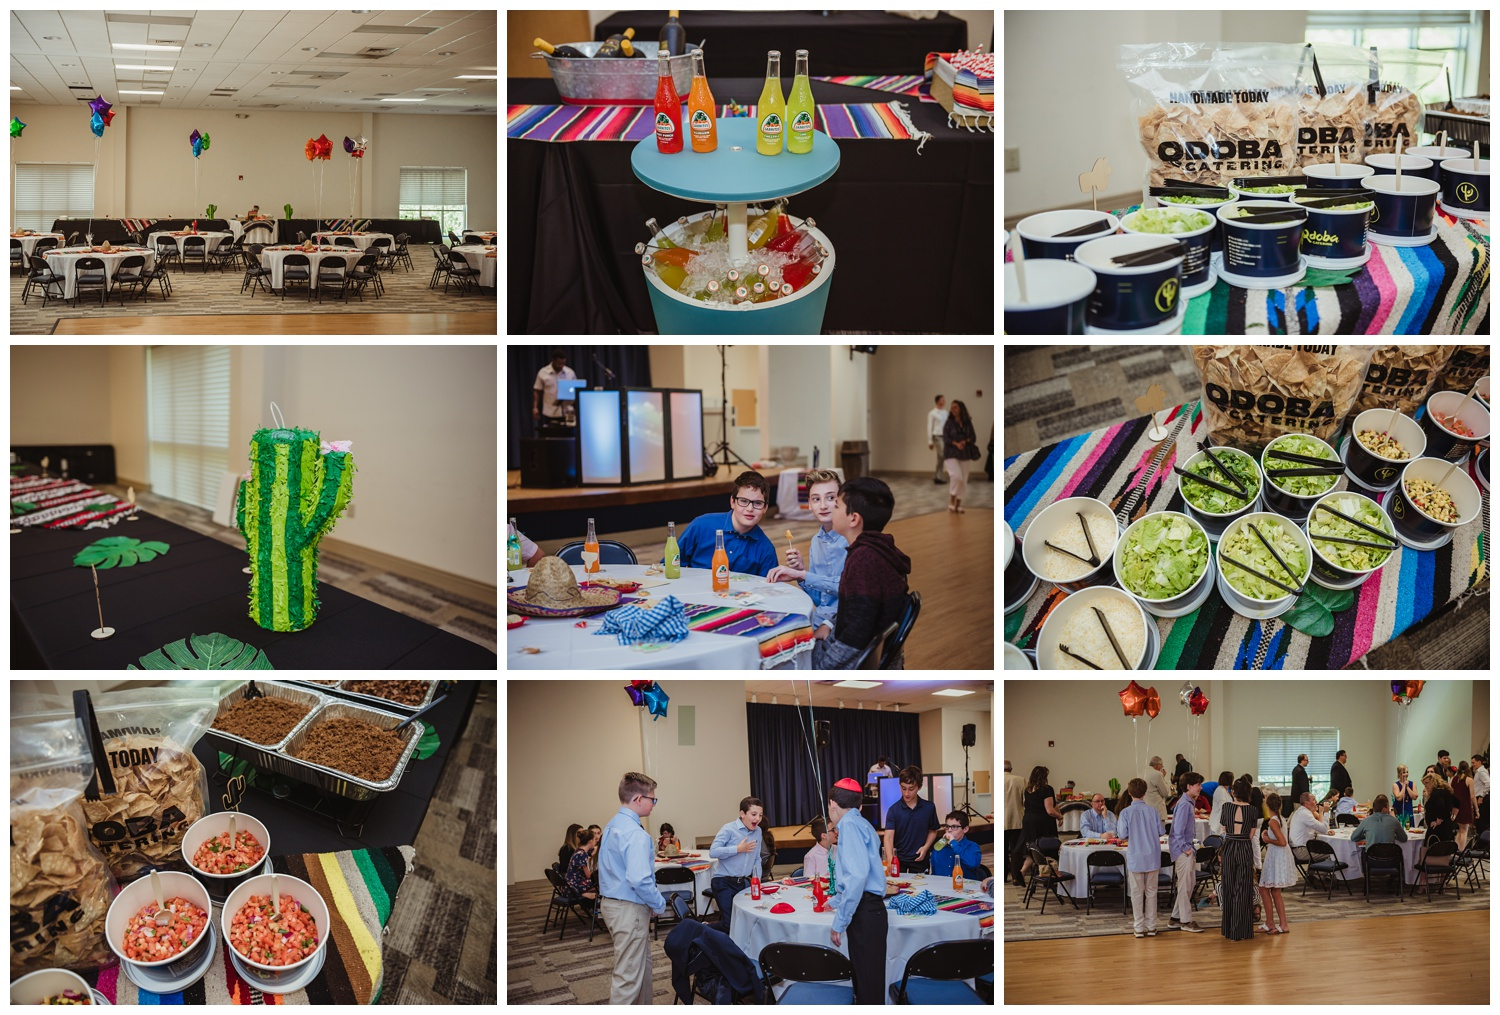 Details of the Mexican themed mitzvah celebration at Temple Beth Or in Raleigh, NC include a Qdoba taco bar, pictures by Rose Trail Images.